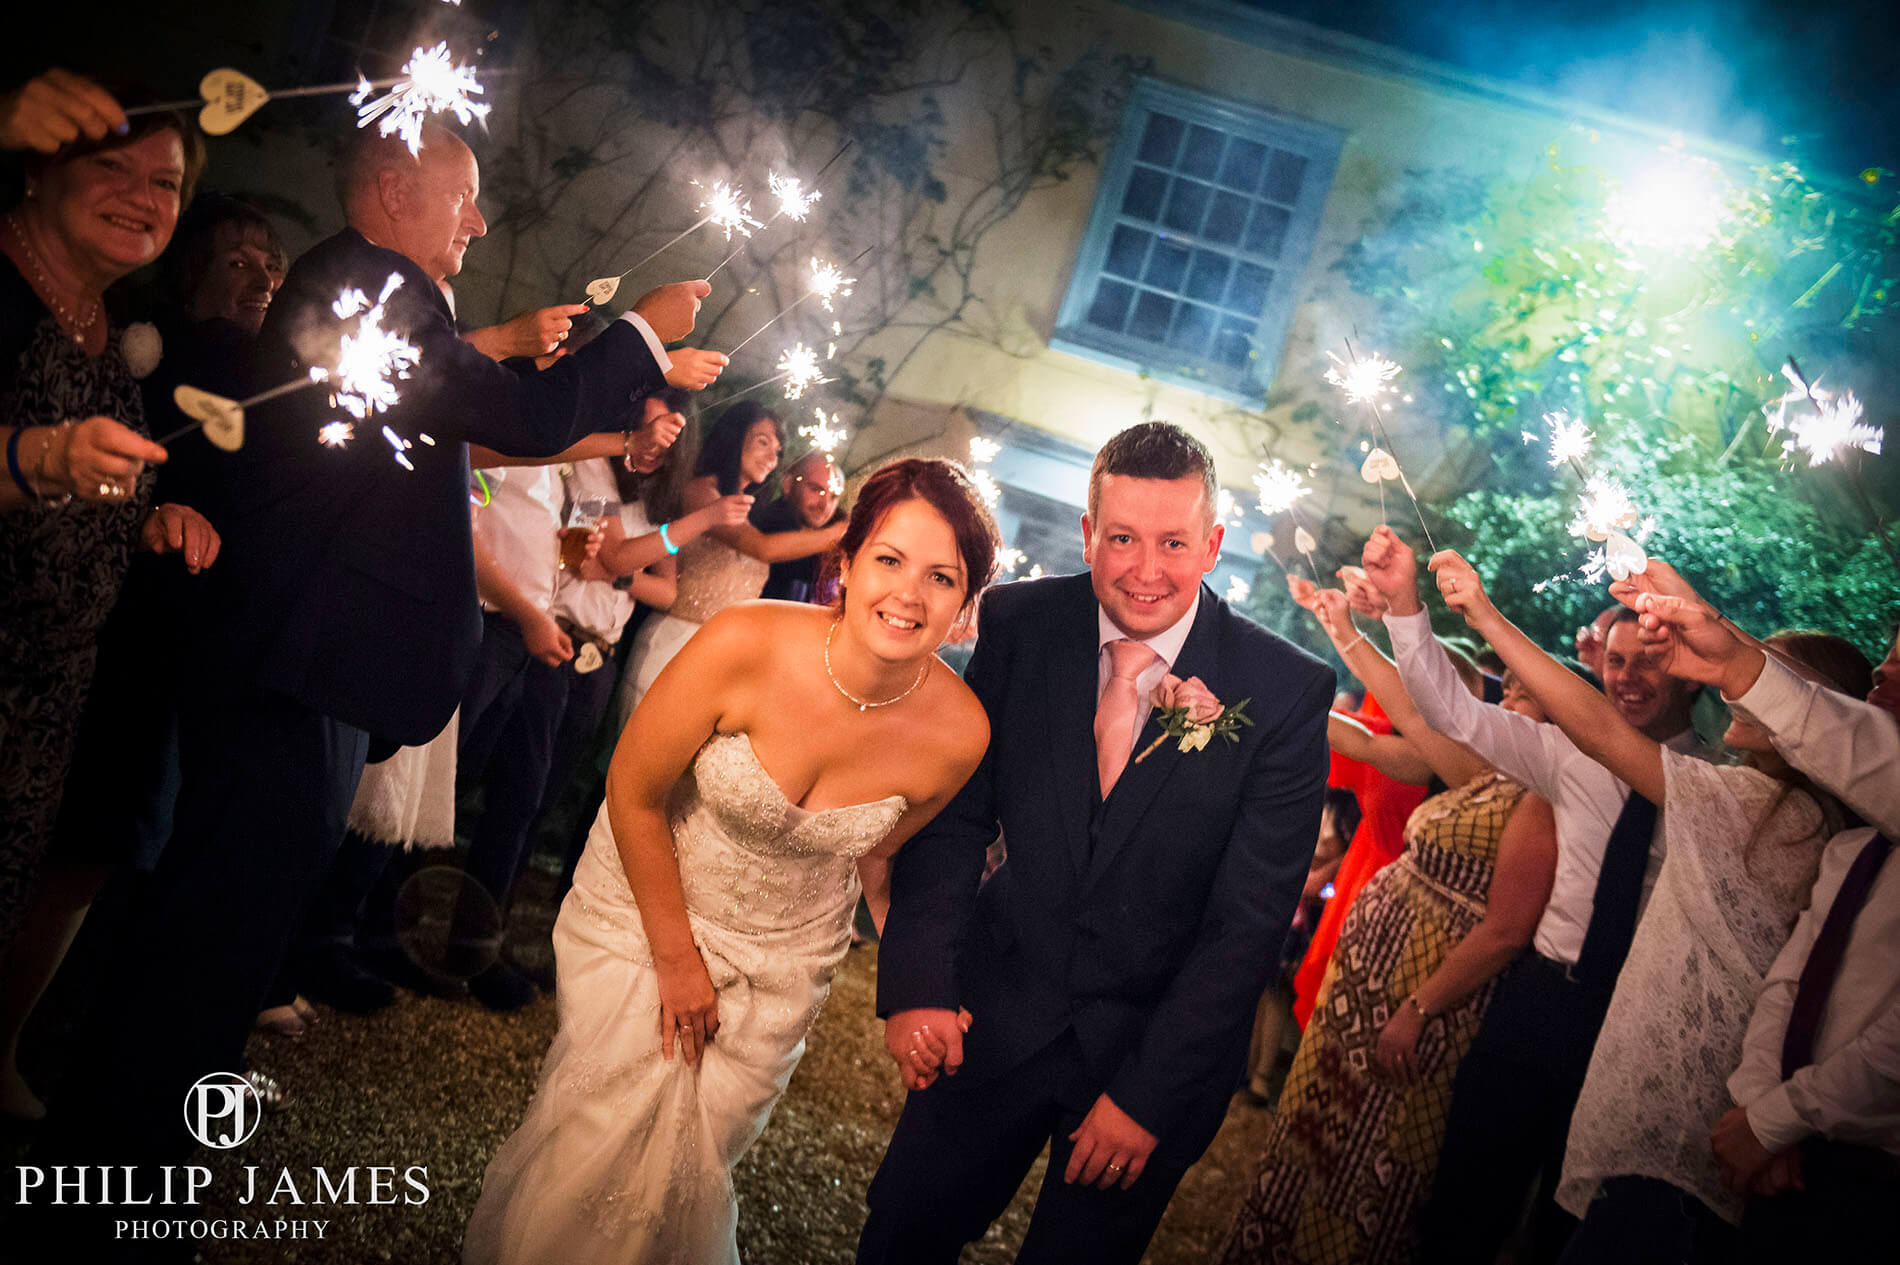 Philip James specializing in Wedding Photography Birmingham - Moments (168 of 170)